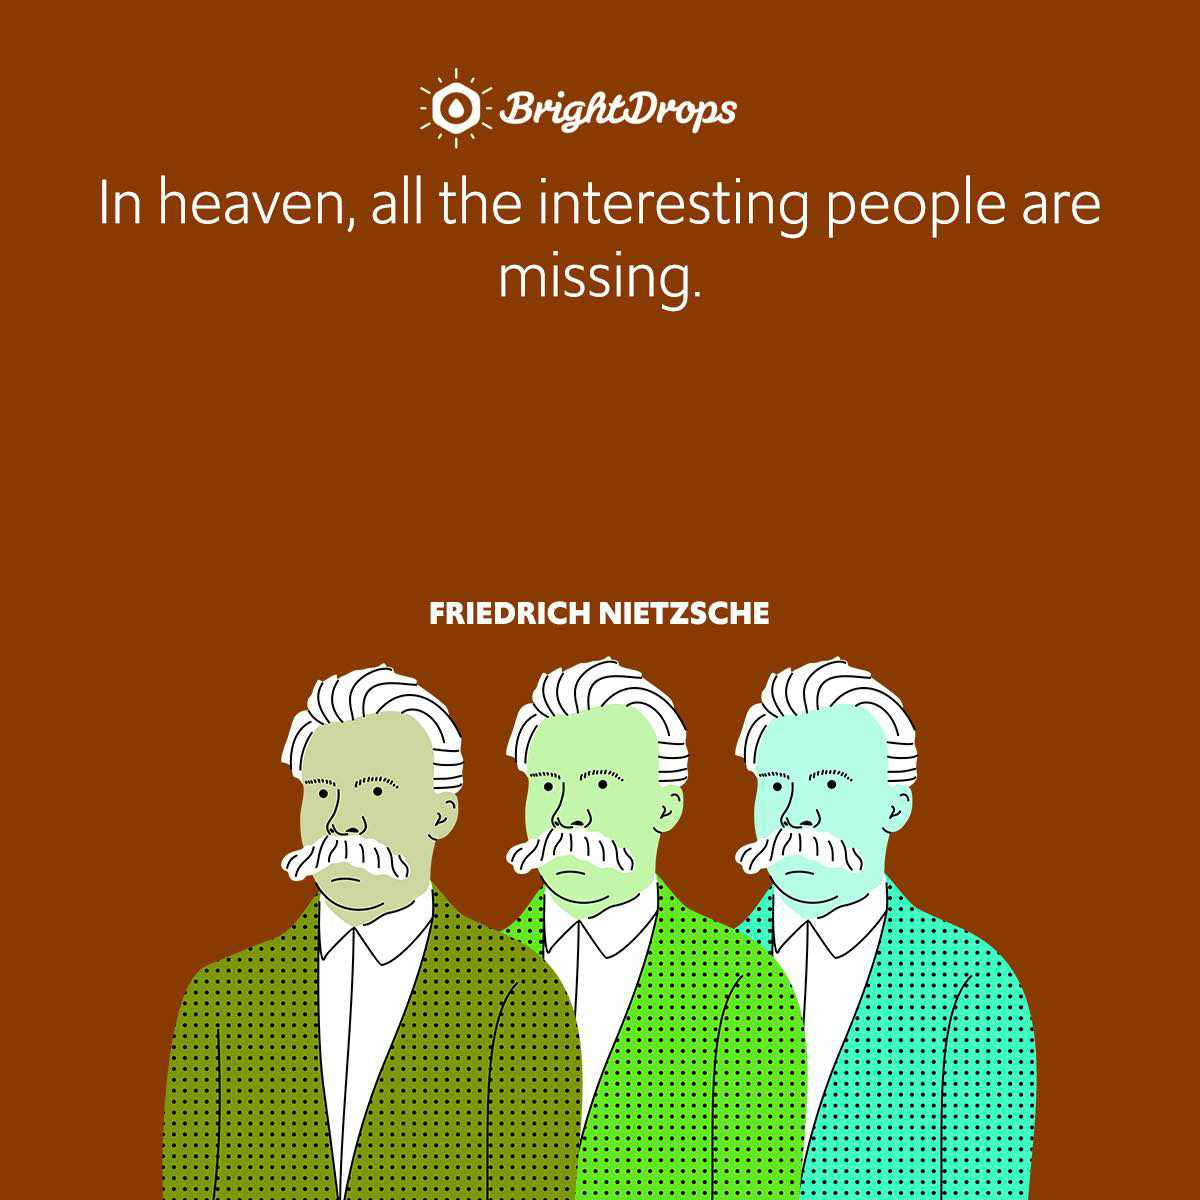 In heaven, all the interesting people are missing.